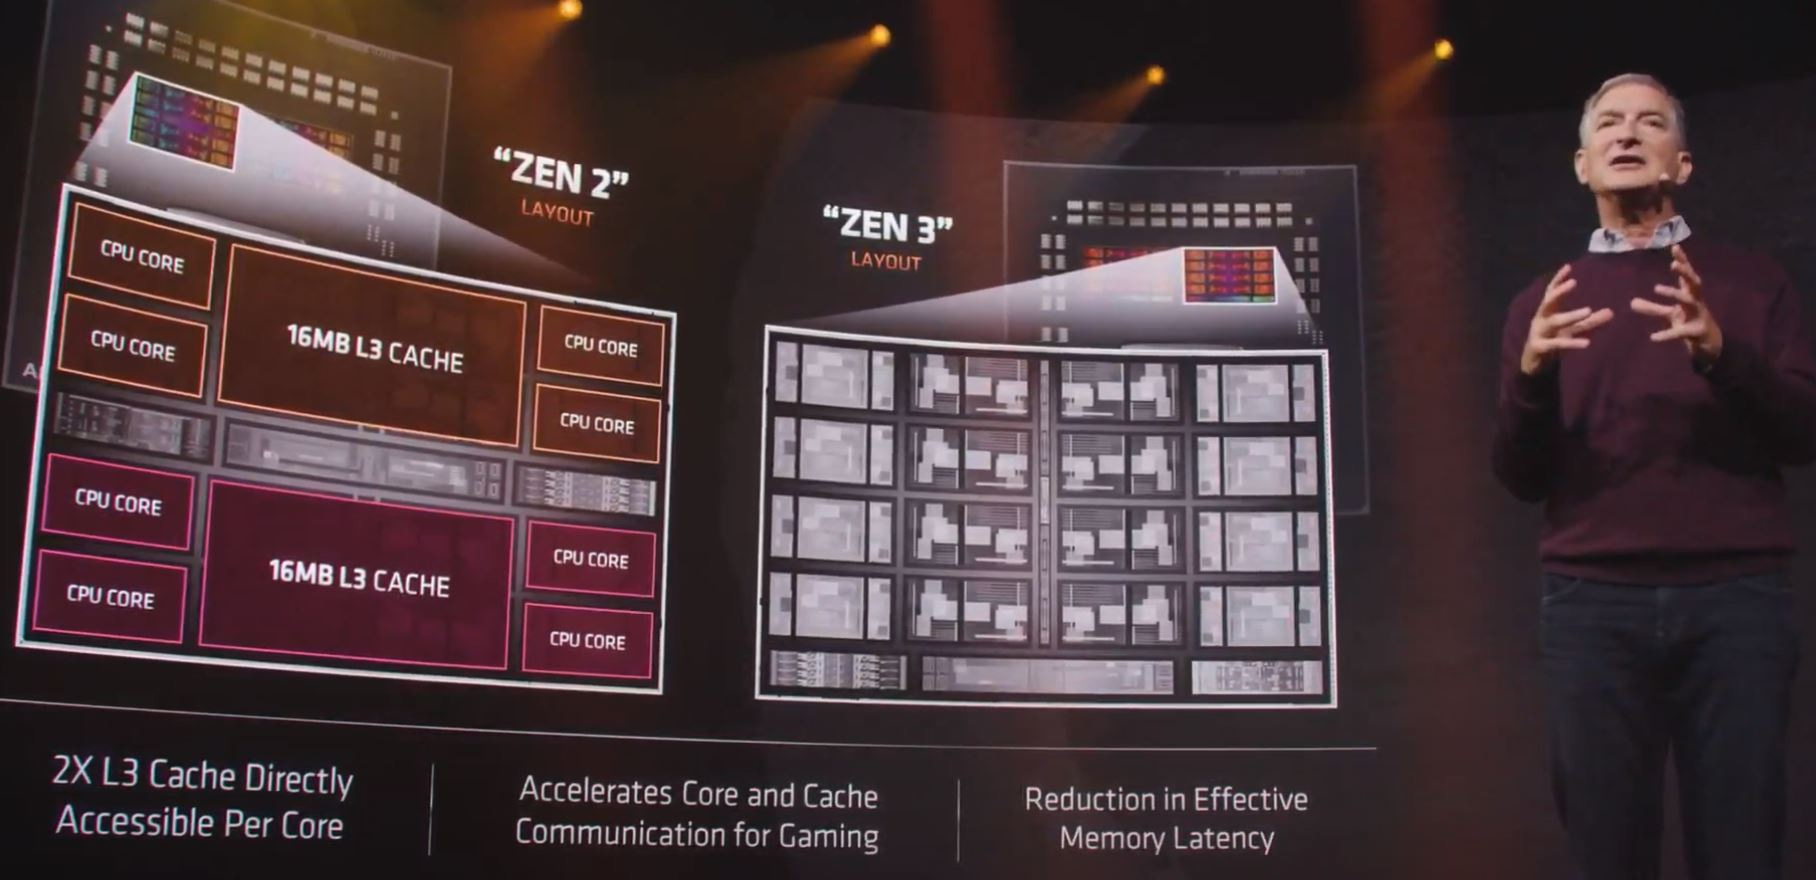 Mark Papermaster AMD Zen 2 And Zen 3 Comparison